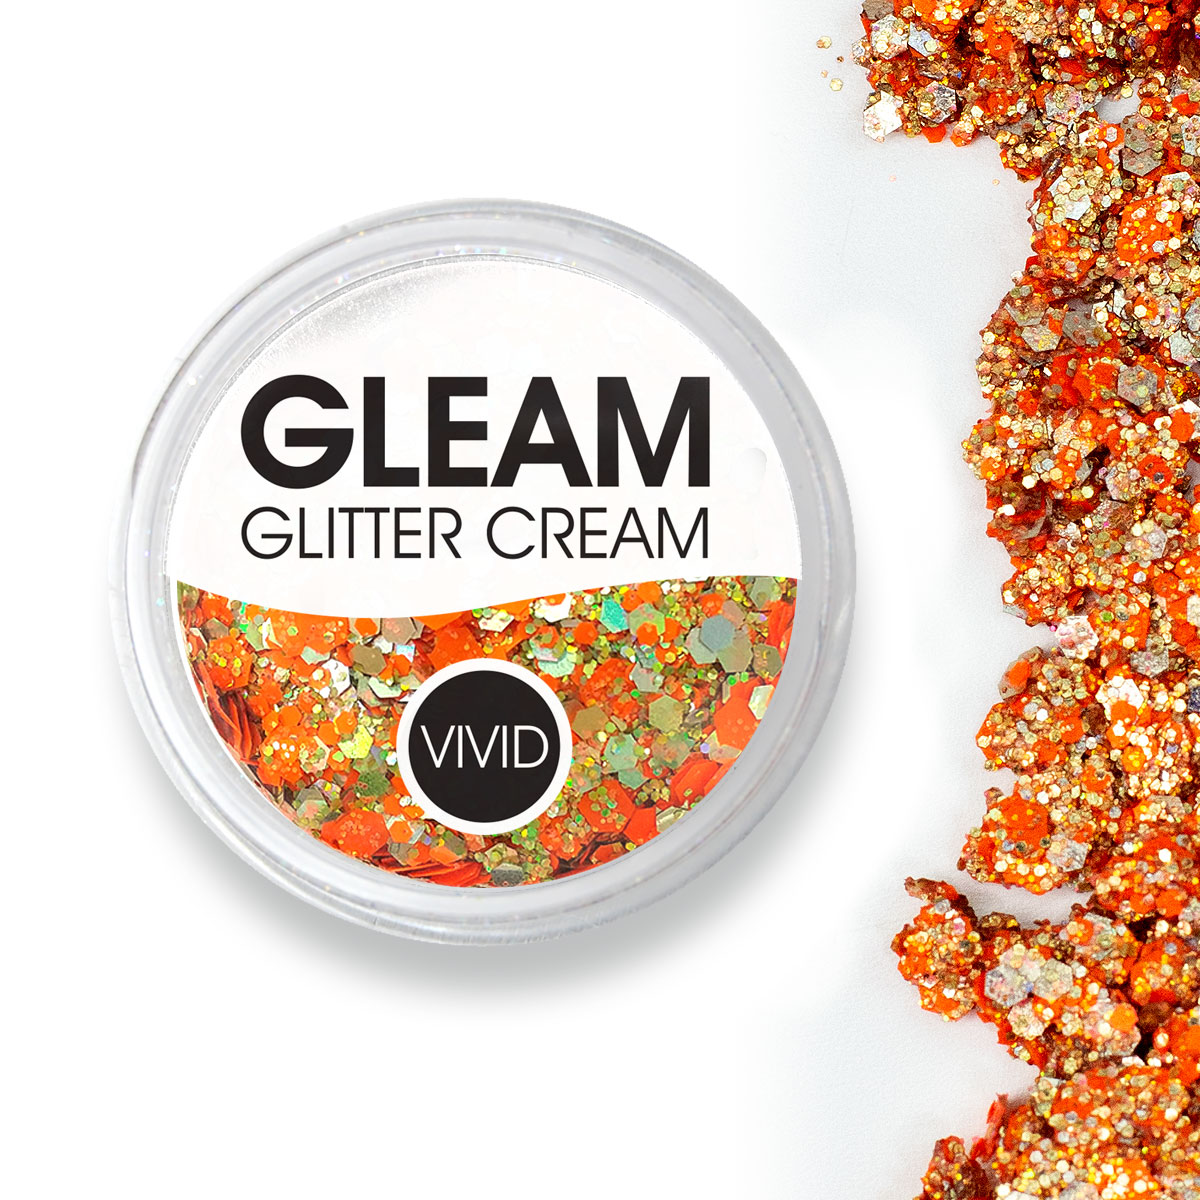 Harvest - Gleam Chunky Glitter Cream